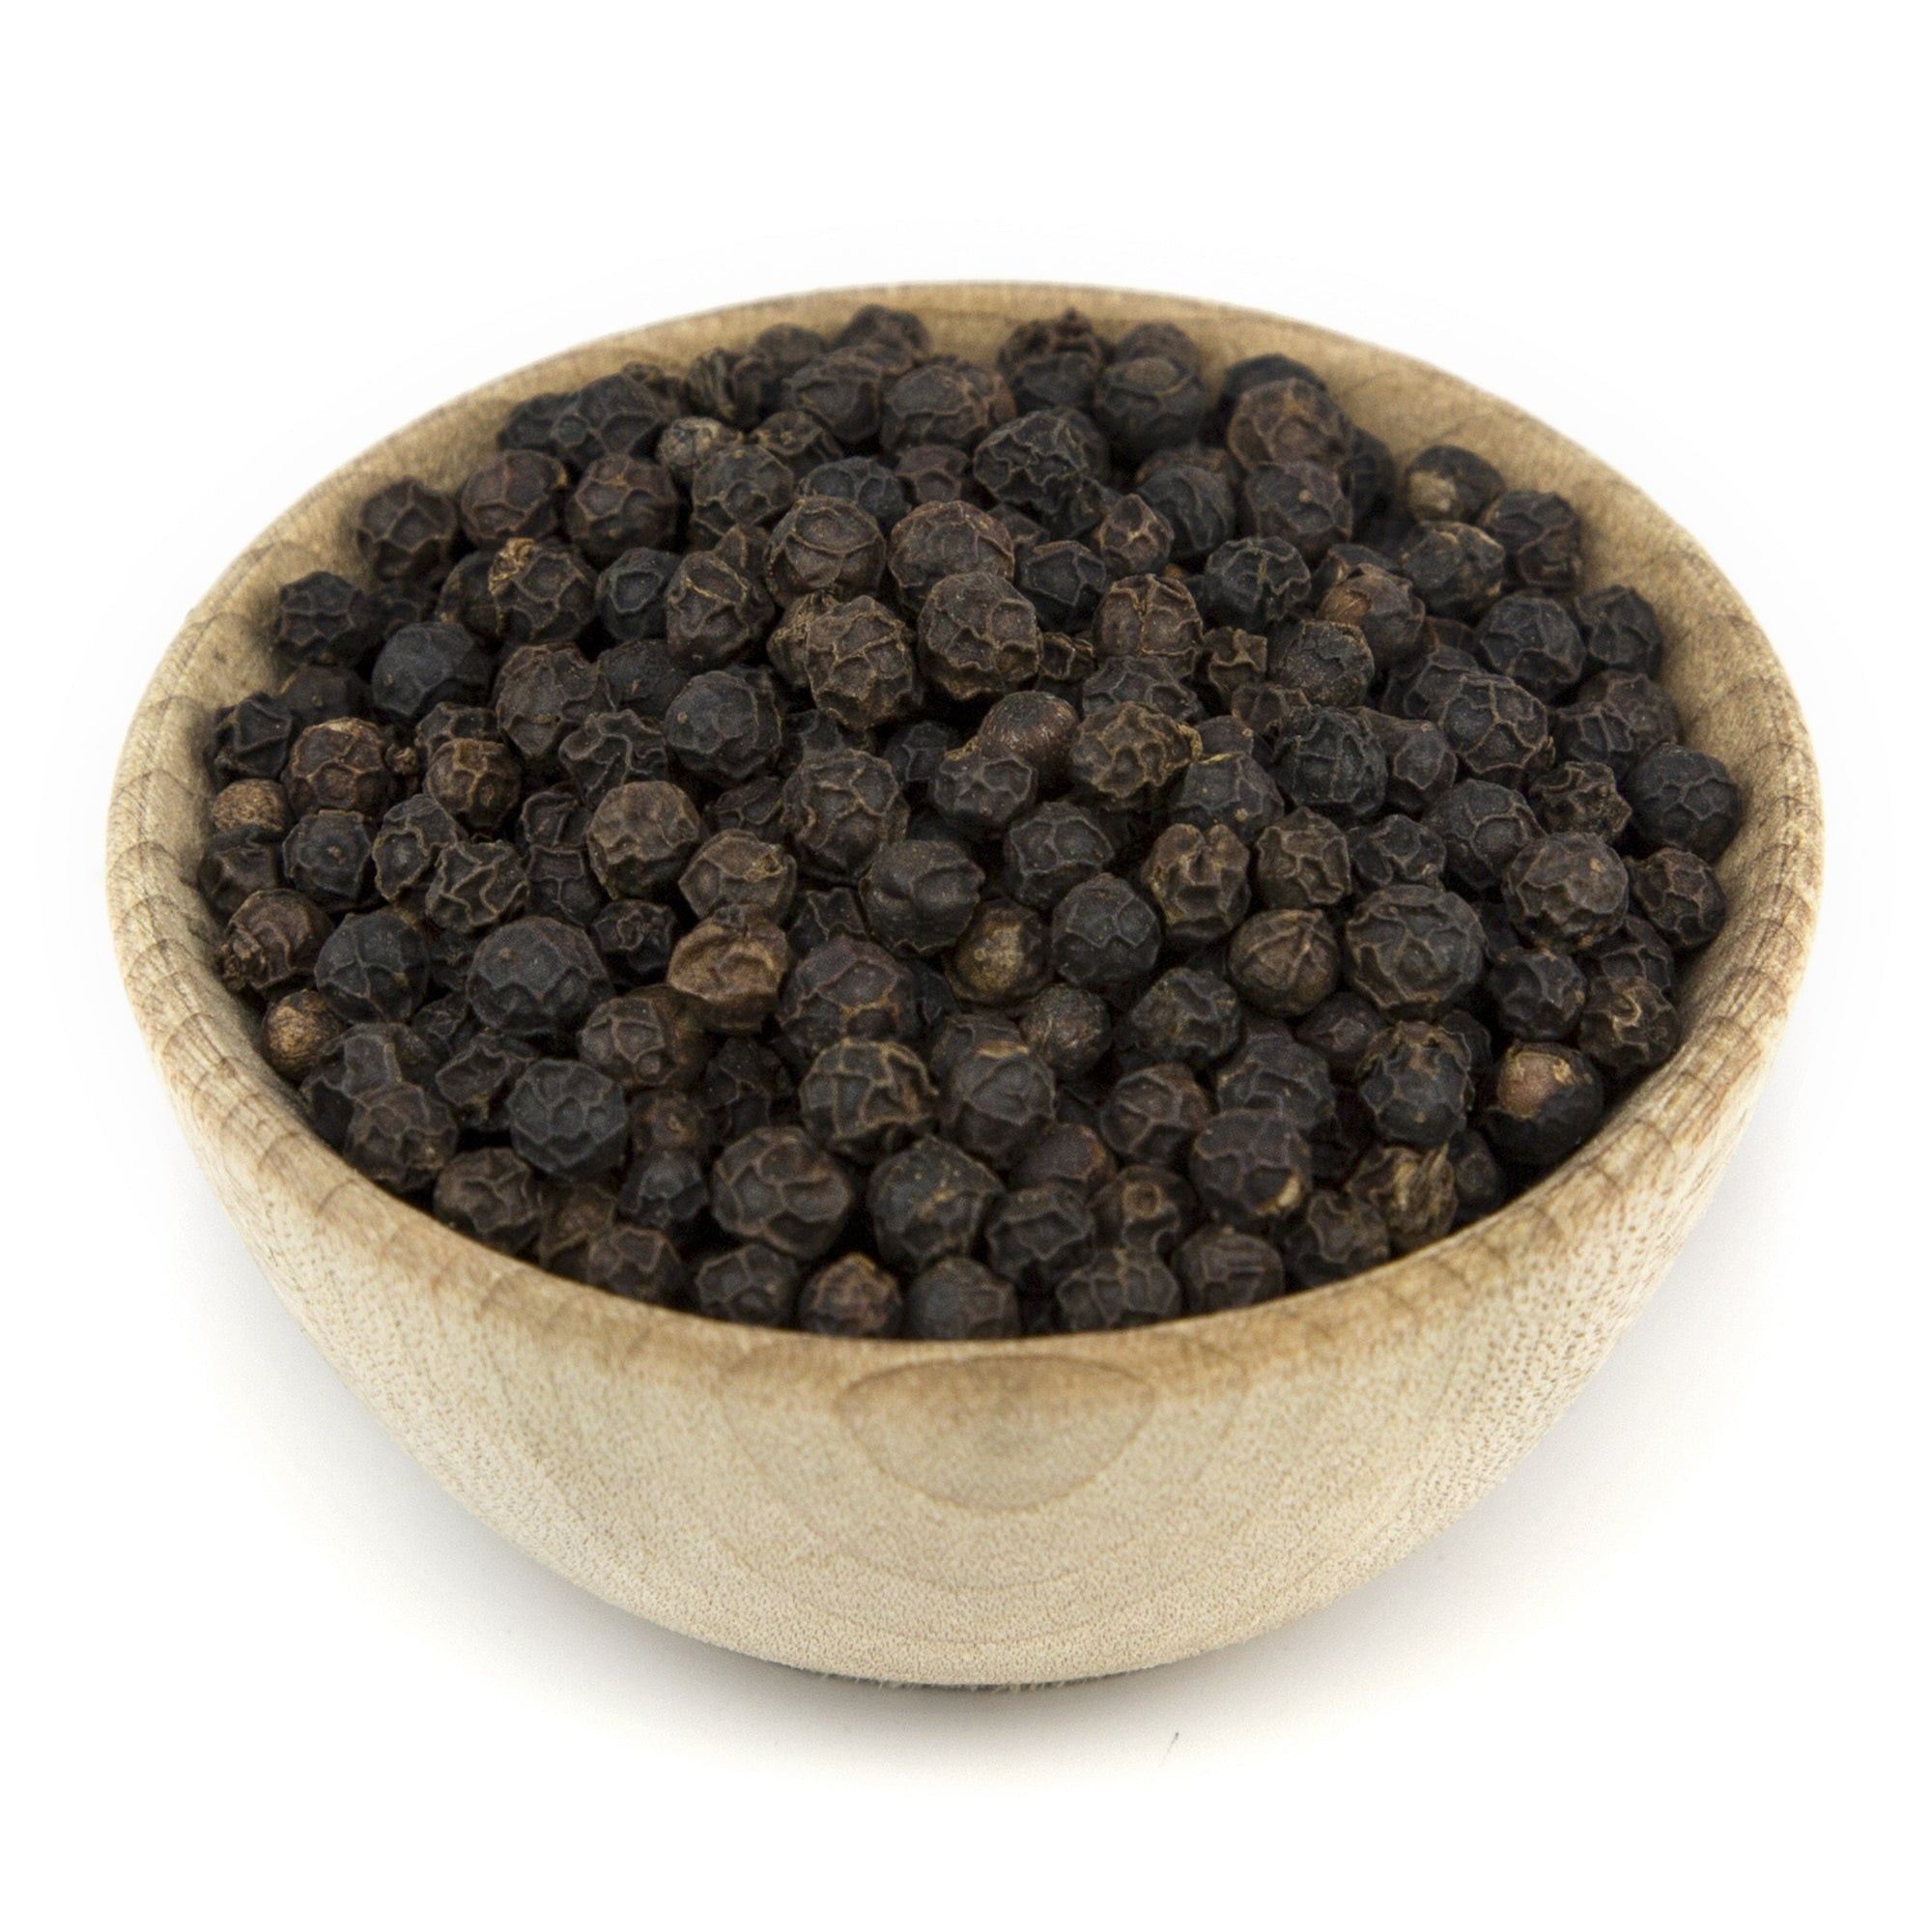 Malabar Black Peppercorns - Spices - Red Stick Spice Company